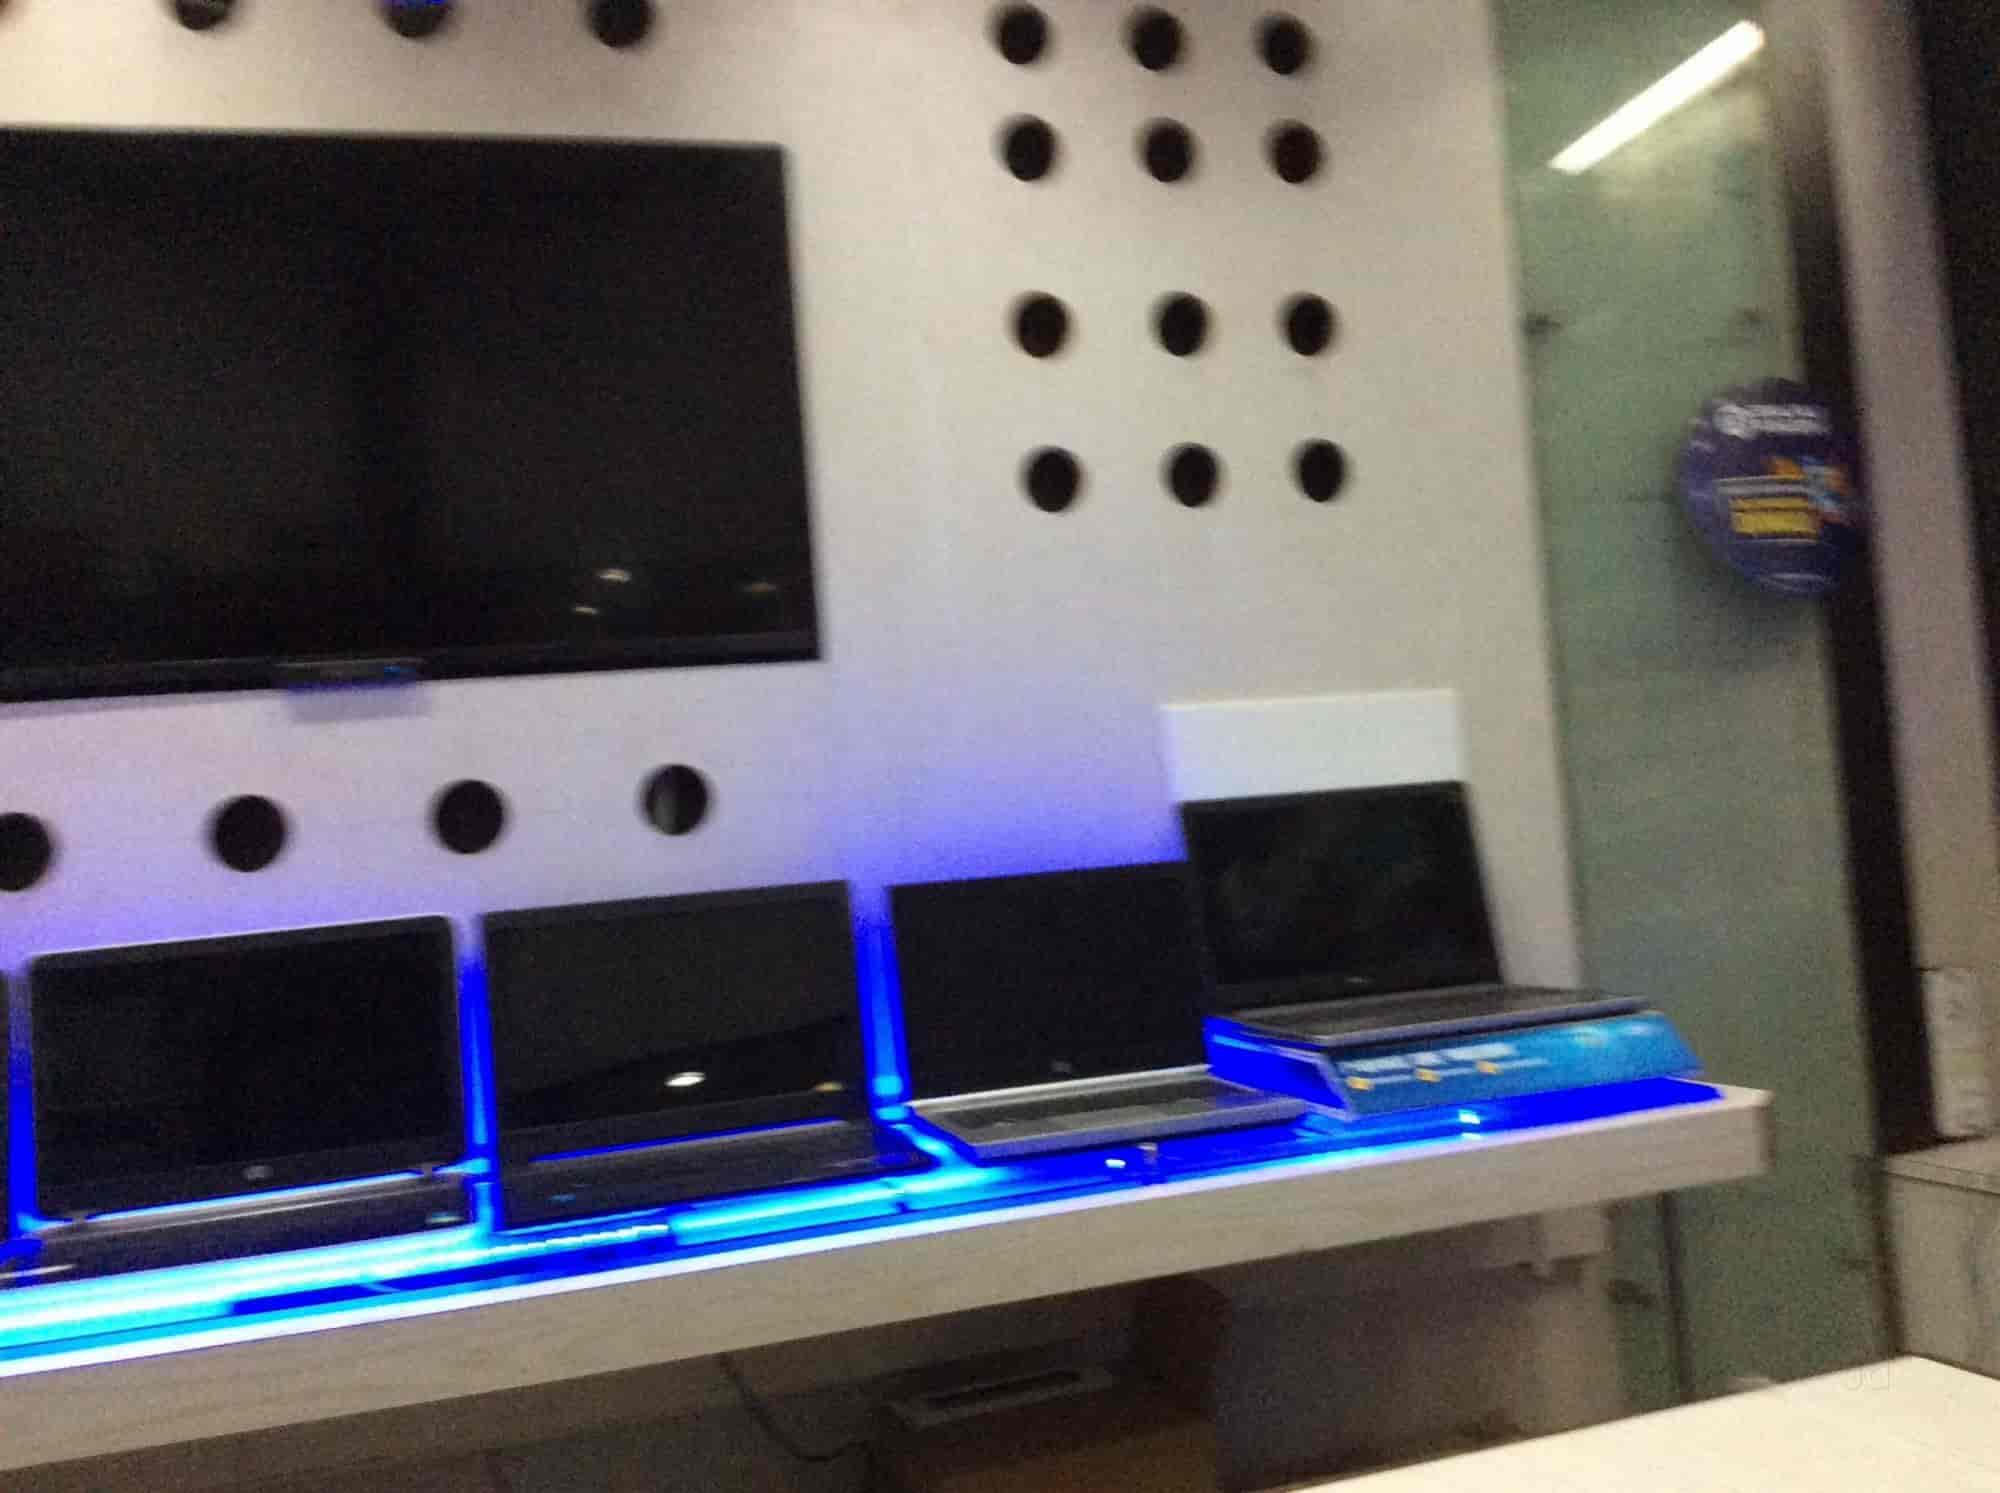 ... V Net Computers Photos, Sector 9d, Chandigarh - Computer Dealers ...